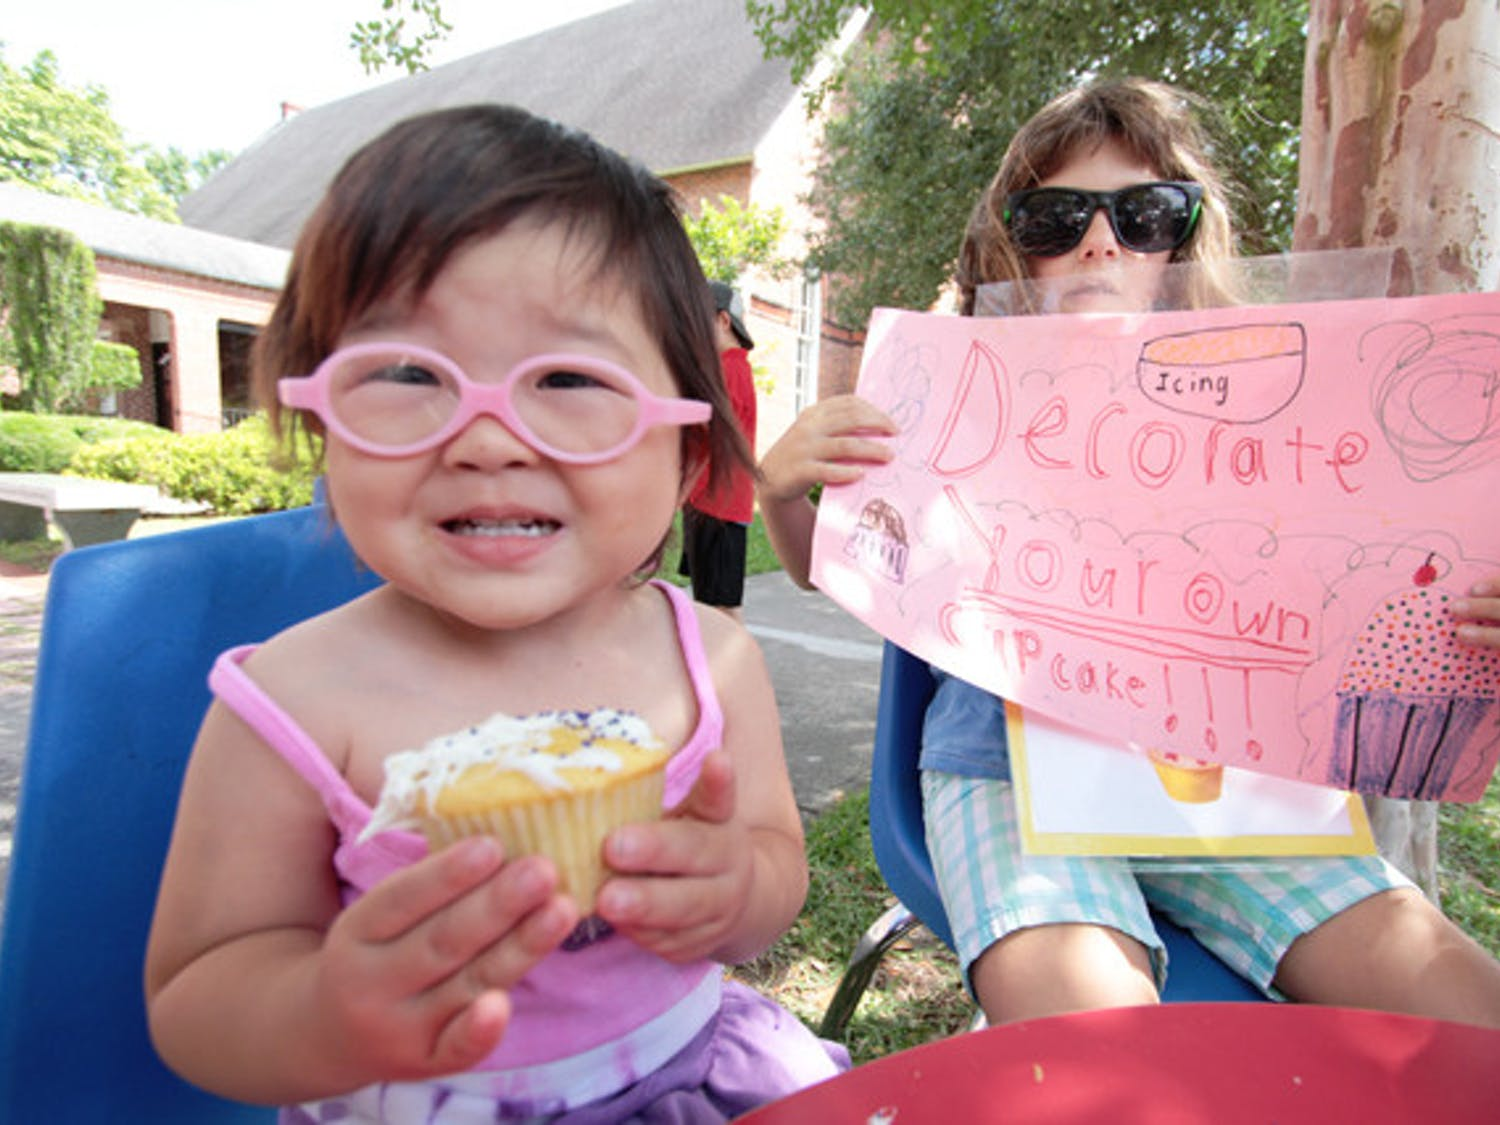 Gainesville resident Mae, 3, shows off a cupcake she iced at the Santa Fe College Spring Arts Festival in 2012 while Jodie, 8, holds a sign promoting the cupcake-decorating to raise money for FUMPers, the preschool of First United Methodist Church.